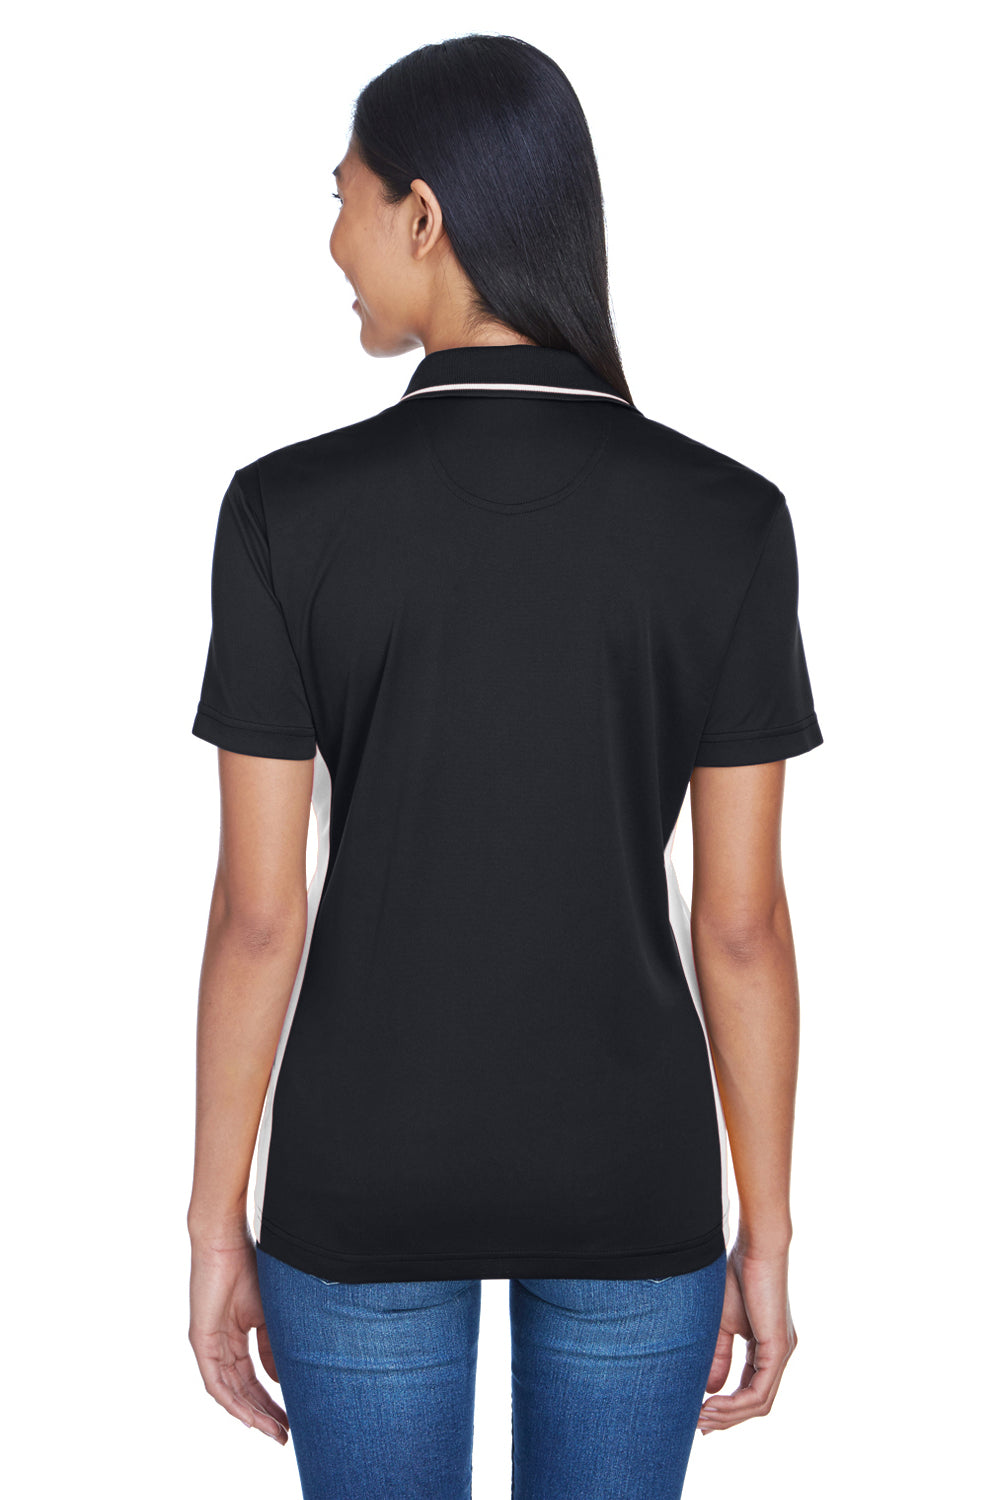 UltraClub 8406L Womens Cool & Dry Moisture Wicking Short Sleeve Polo Shirt Black/Stone Back